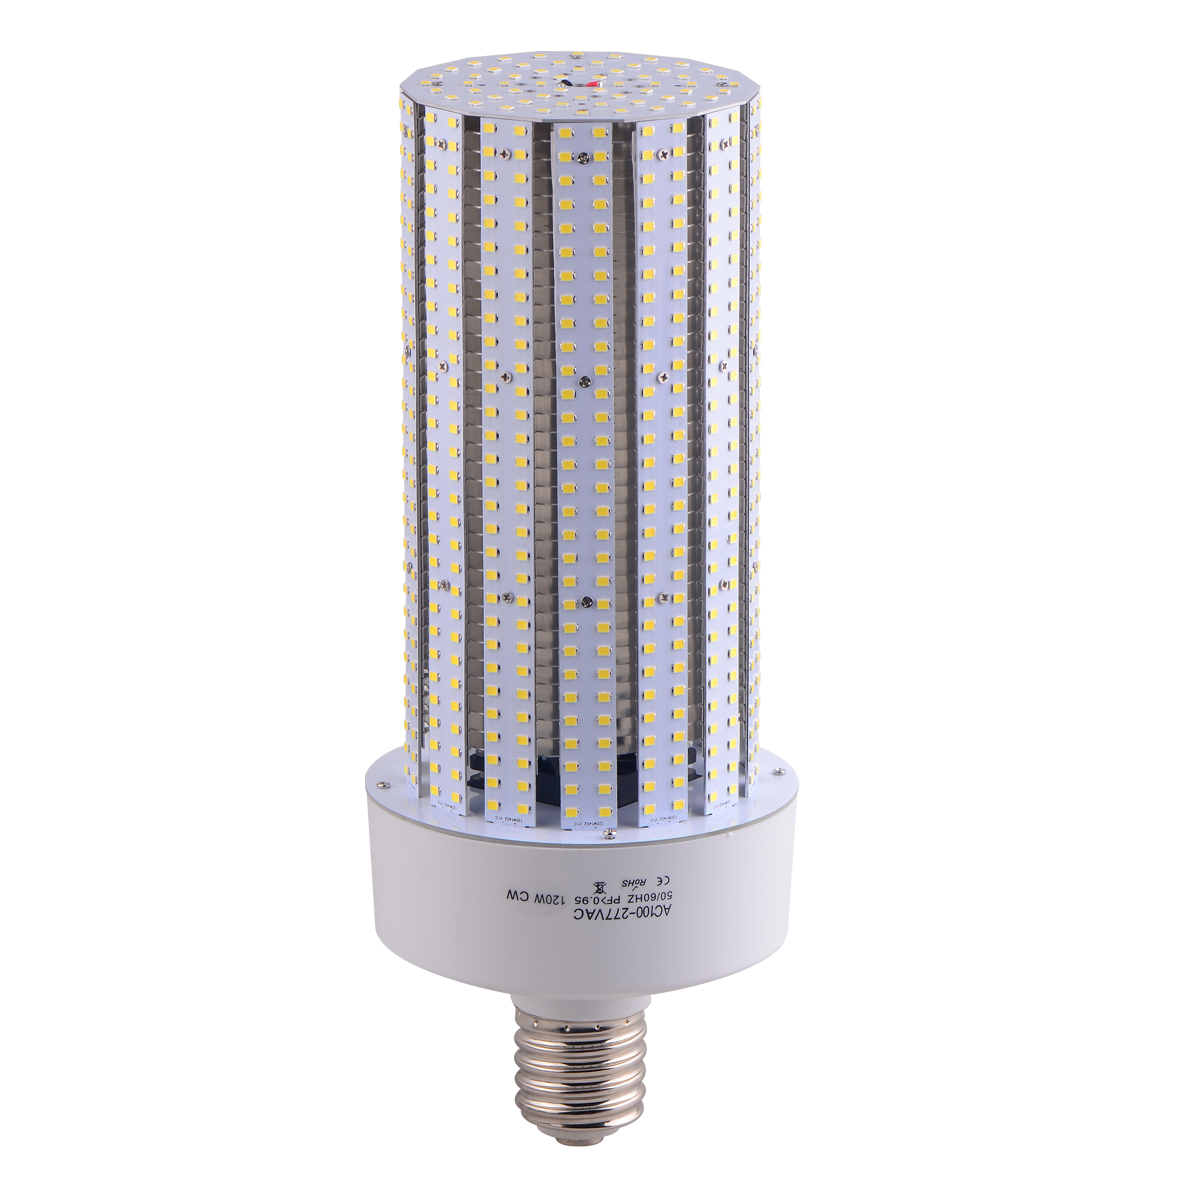 100 Watt Led Corn Cob Light (7)